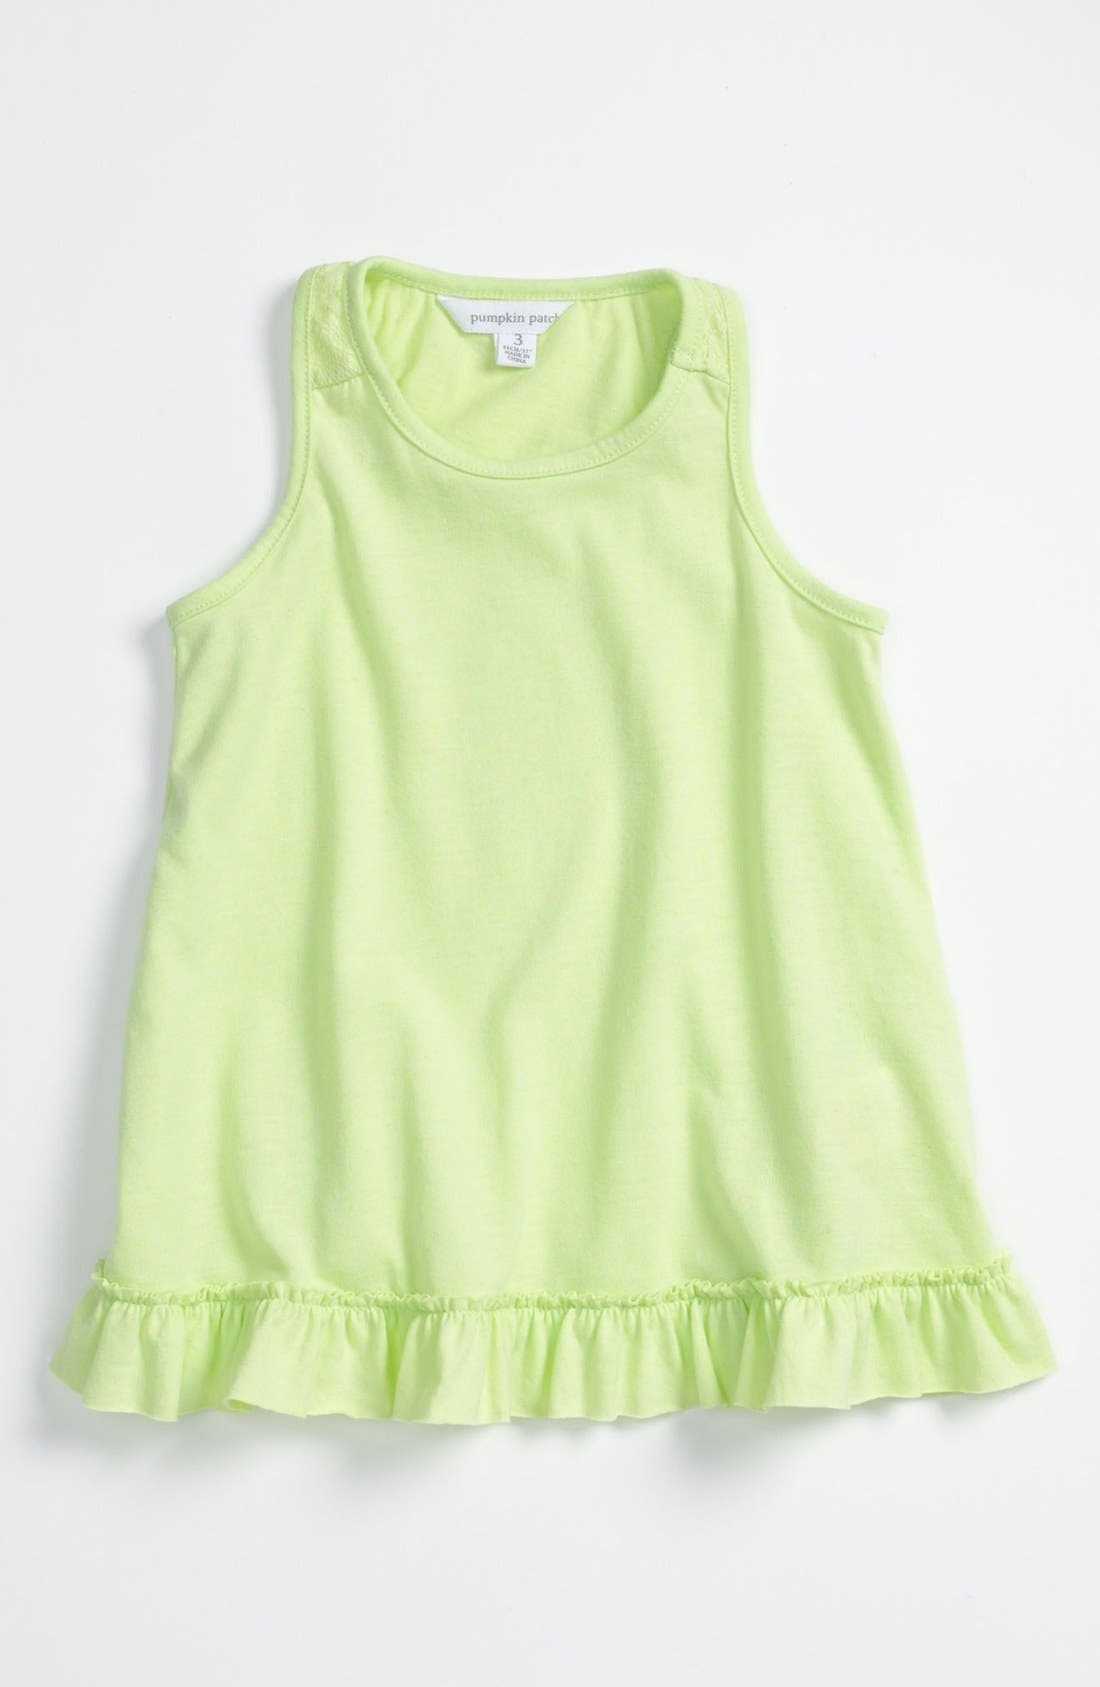 Main Image - Pumpkin Patch Tank Top (Toddler)